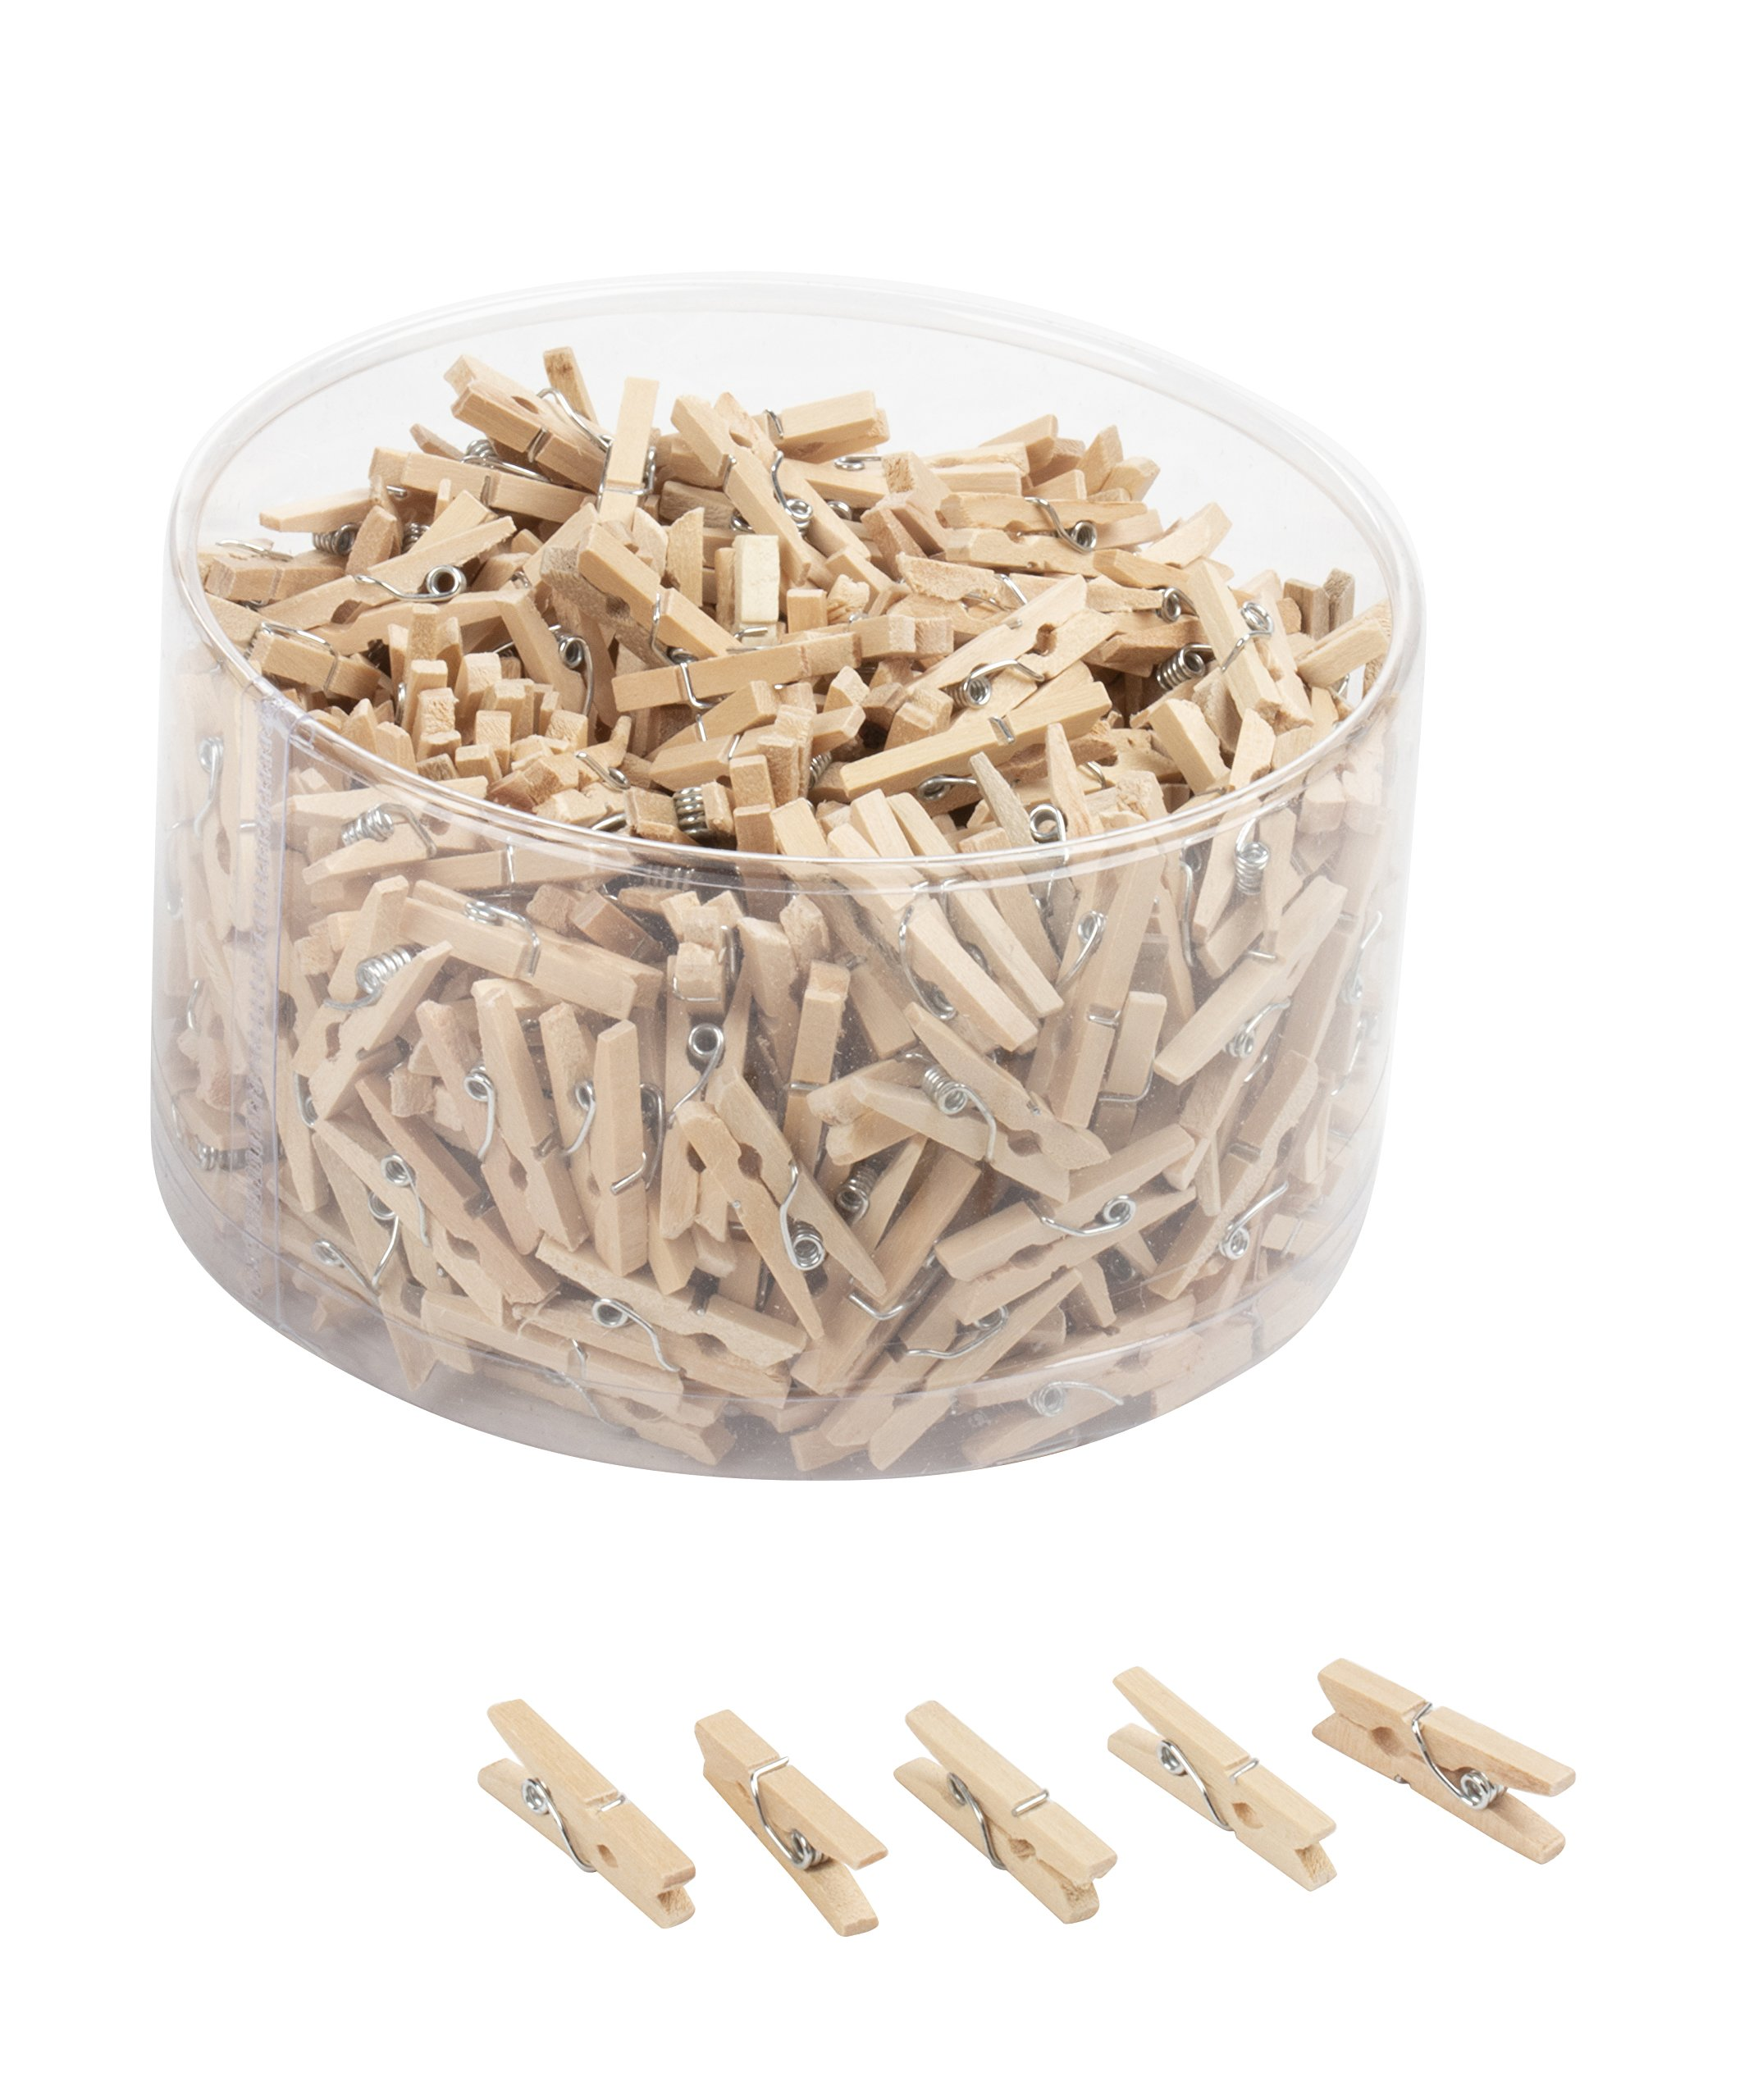 Mini Wooden Clothespins - 500-Piece Unfinished Wooden Clips for Crafts, Photo Clips, Home Decoration, 0.5 x 0.5 x 0.98 inches by Juvale